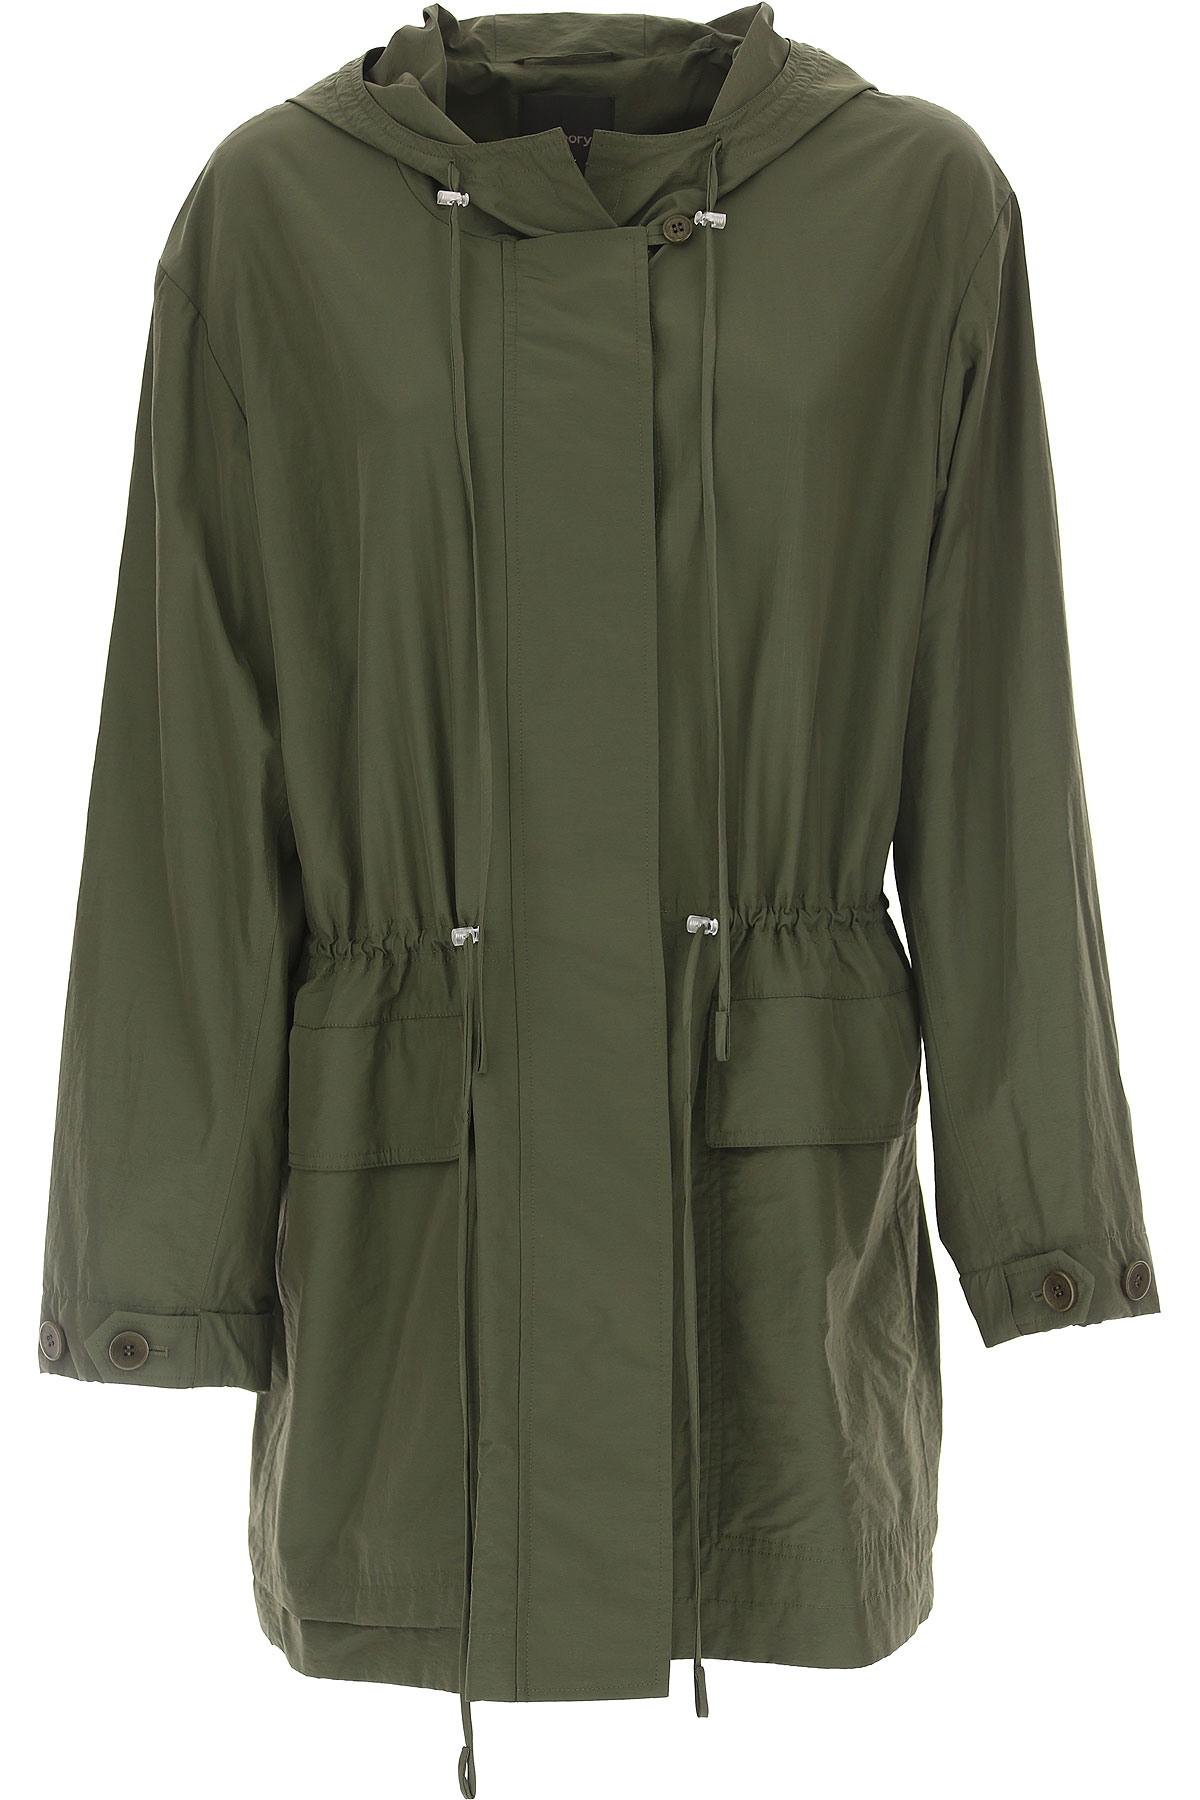 Image of Theory Women\'s Coat On Sale, Olive Green, Cotton, 2017, 4 6